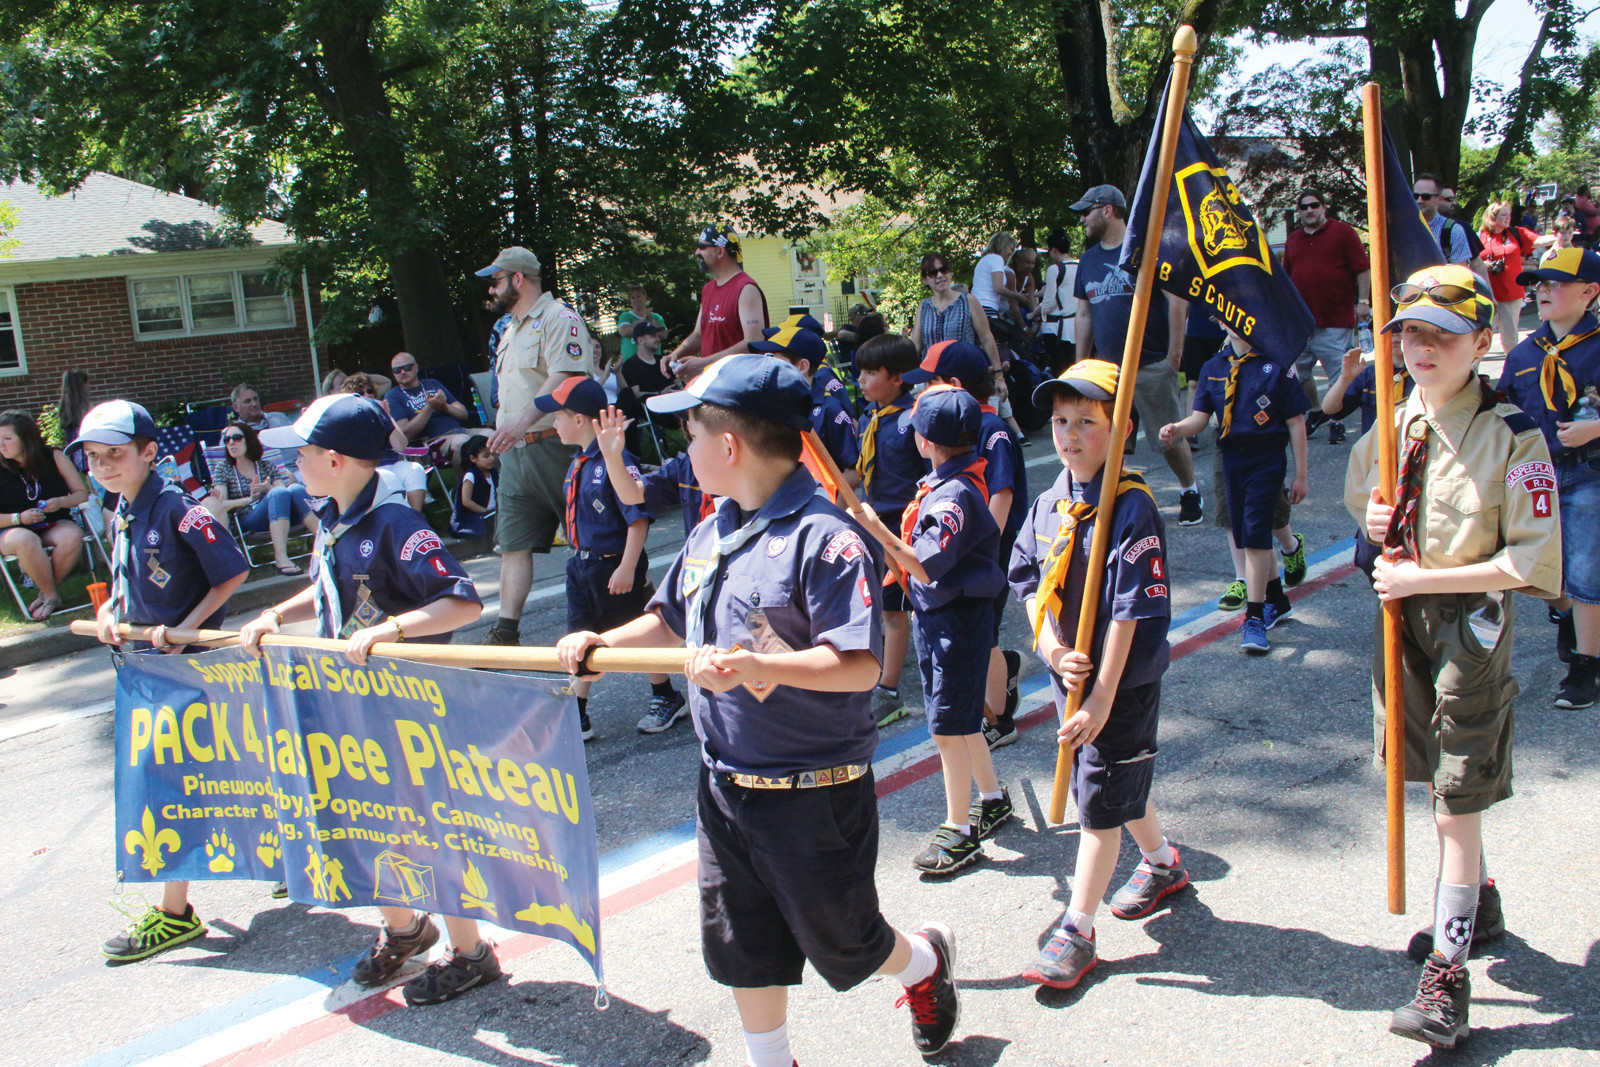 SCOUTS ON THE MARCH: Pack 4 Gaspee Plateau got lots of cheers as they marched.